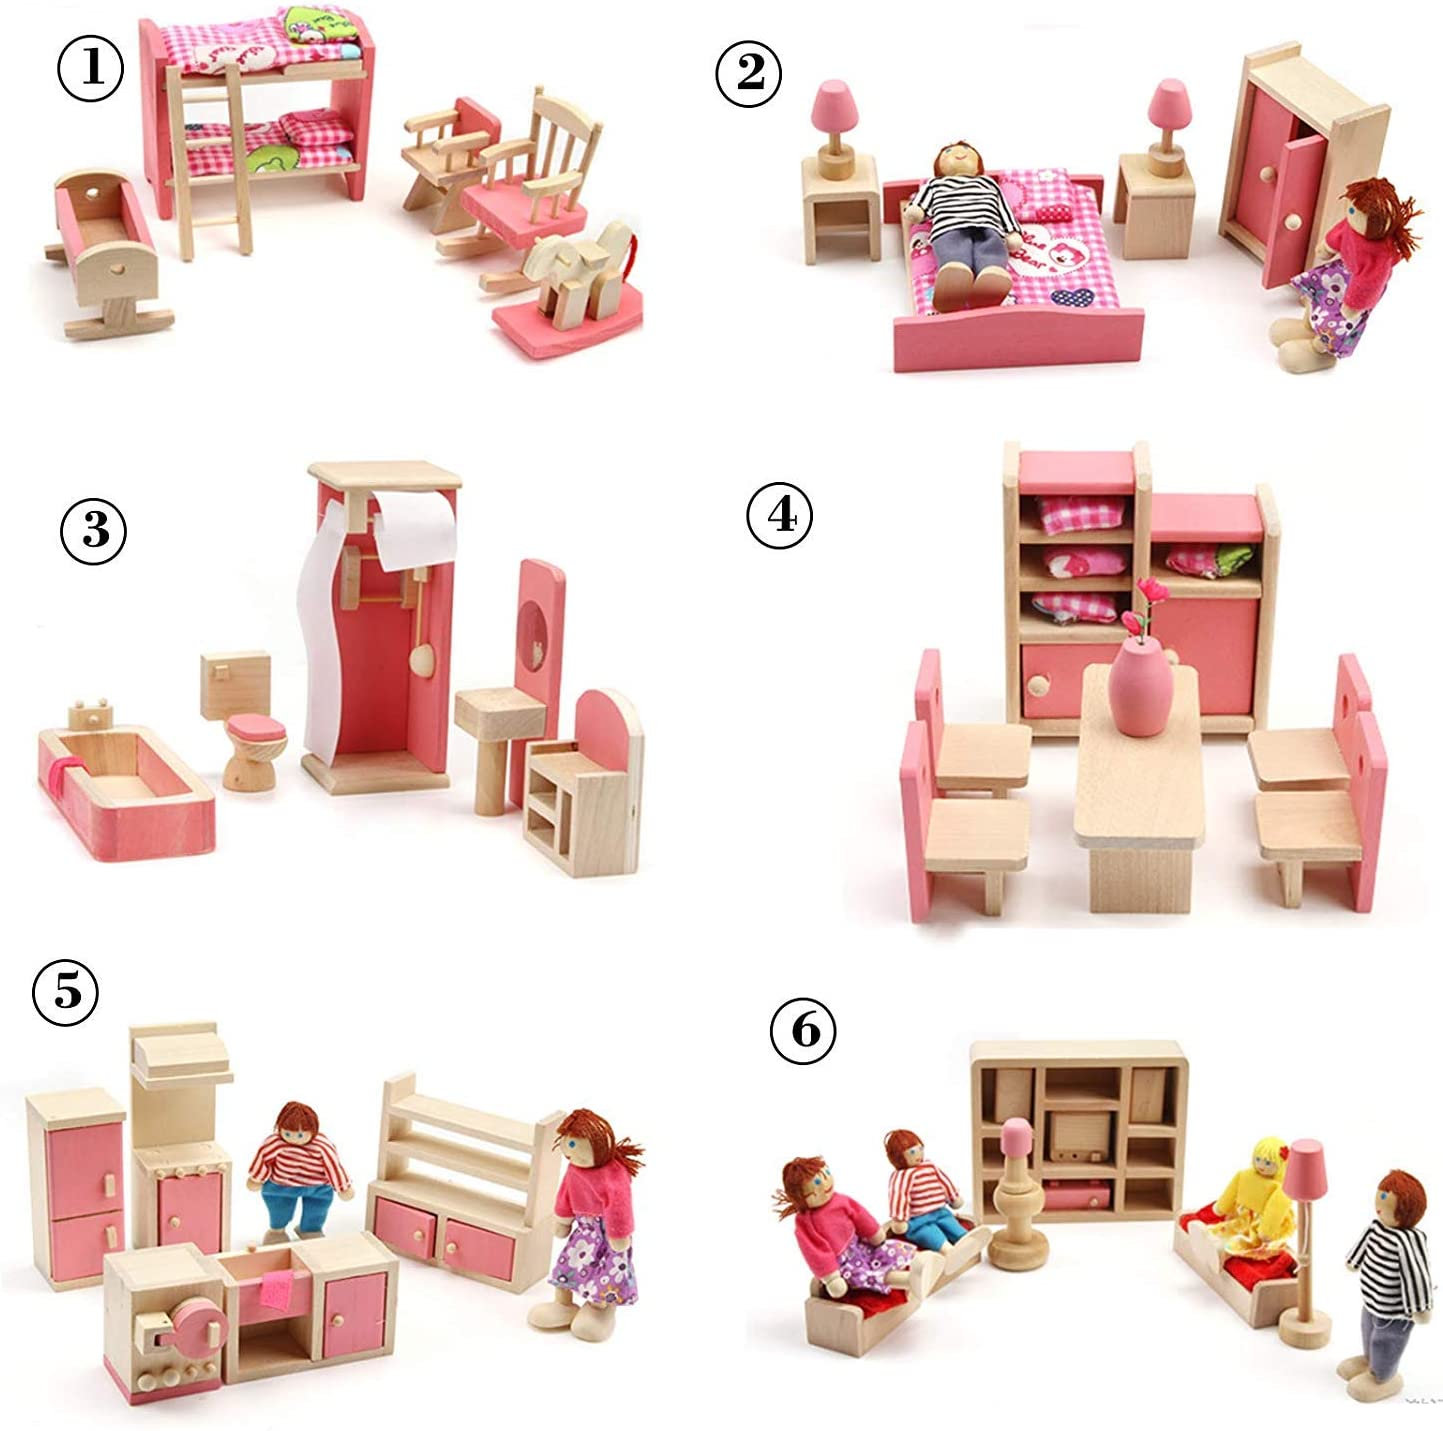 Huayao 6 Set Wood Family Dollhouse Furniture Set with 4 People Wooden Family Dolls, Bedroom/Living Room/Kid Room/Bathroom/Kitchen/Dining Room